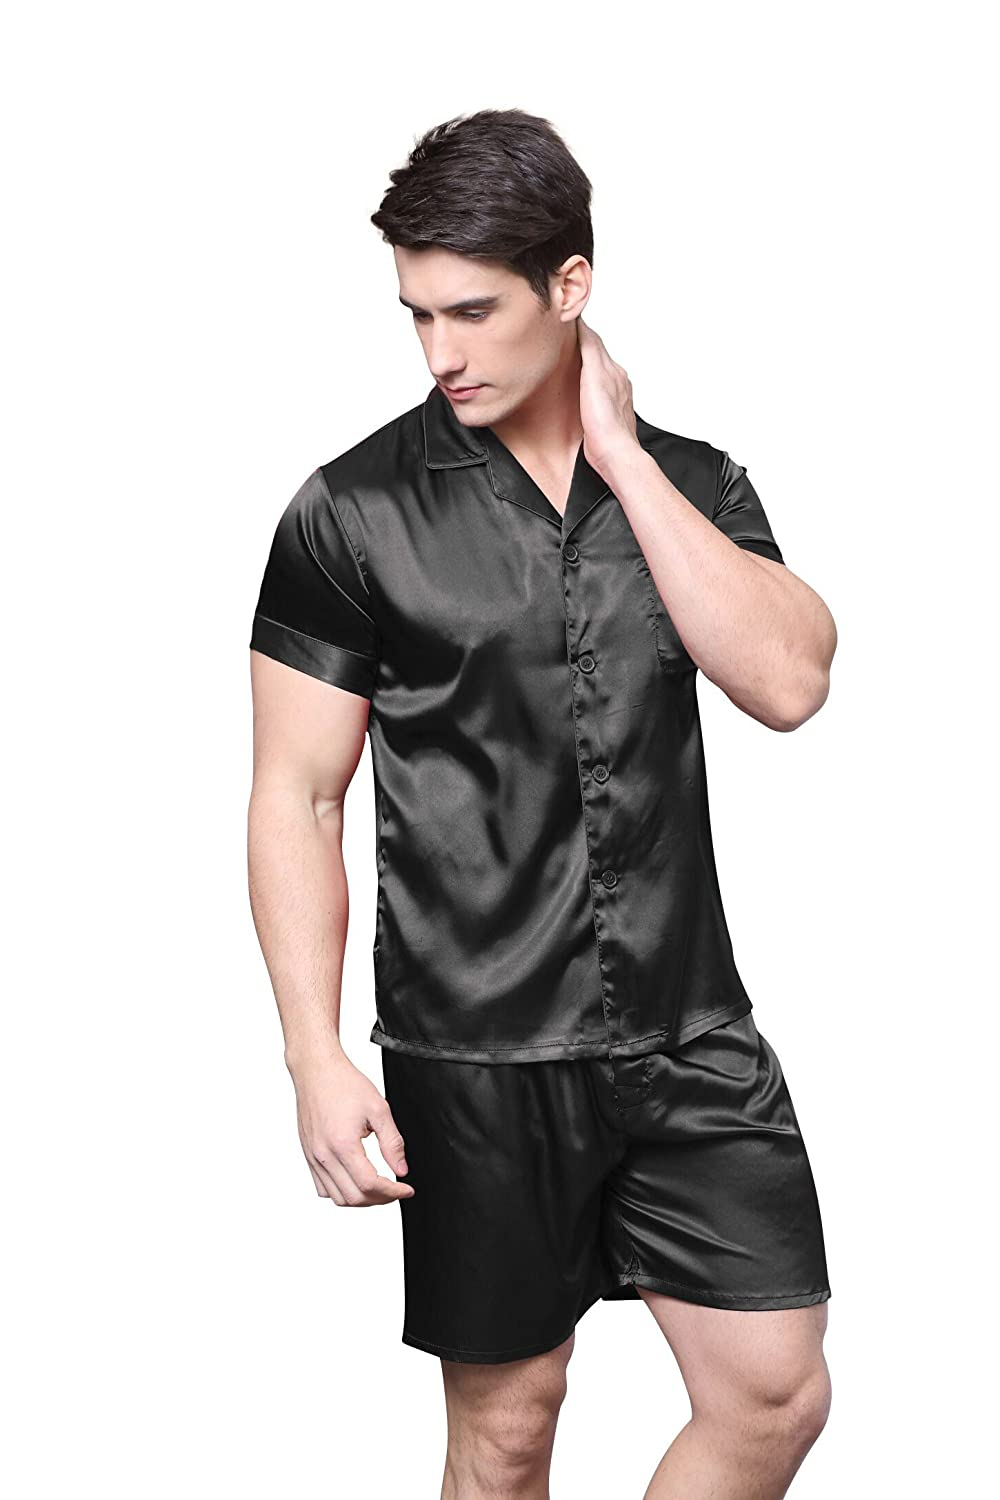 Popular Brand Free Shipping Mens Plus Size Short Sleeve Shorts V Collar Sleepwear Set Soft 100% Cotton Pajamas Nightgown Summer Homewear 5xl Men's Sleep & Lounge